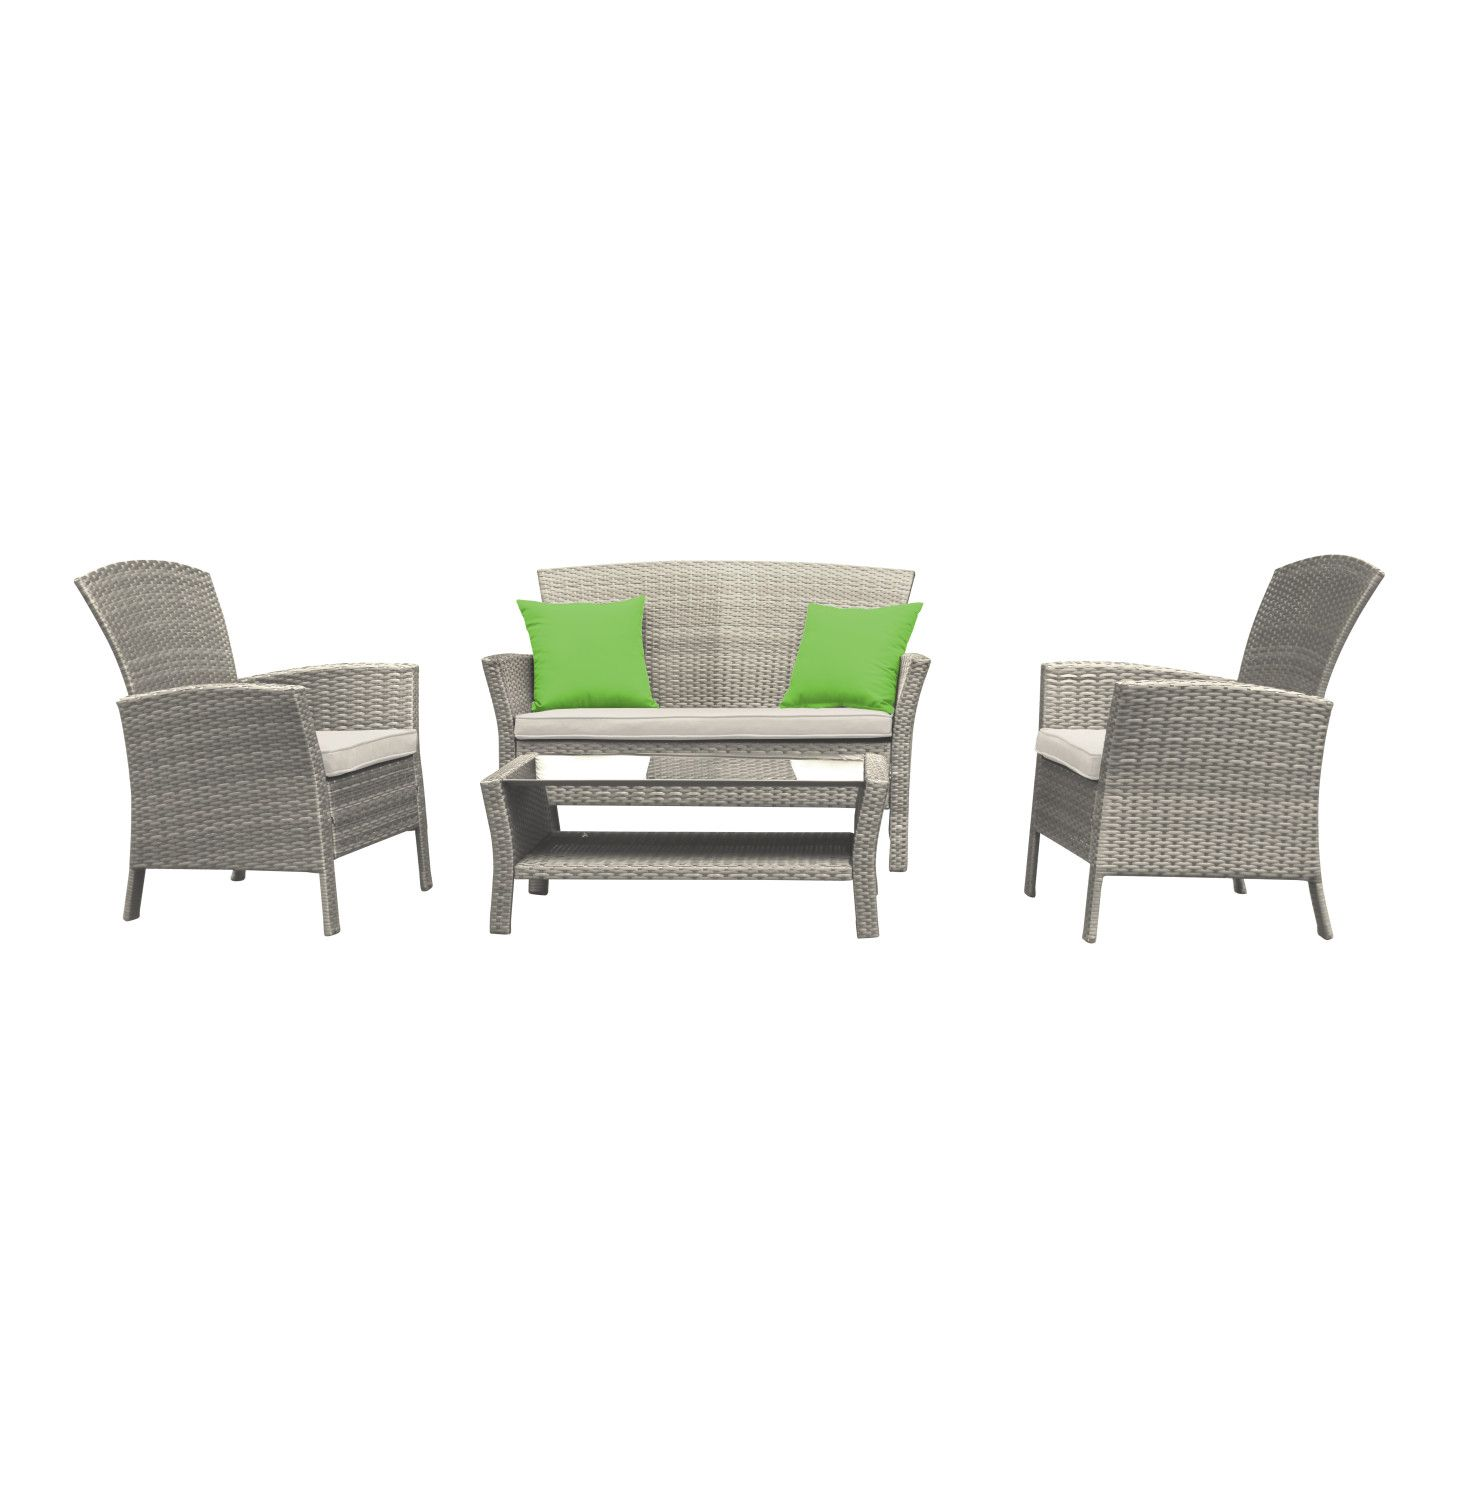 TERRACE LEISURE 4 Piece Oasis Wicker Set Cream